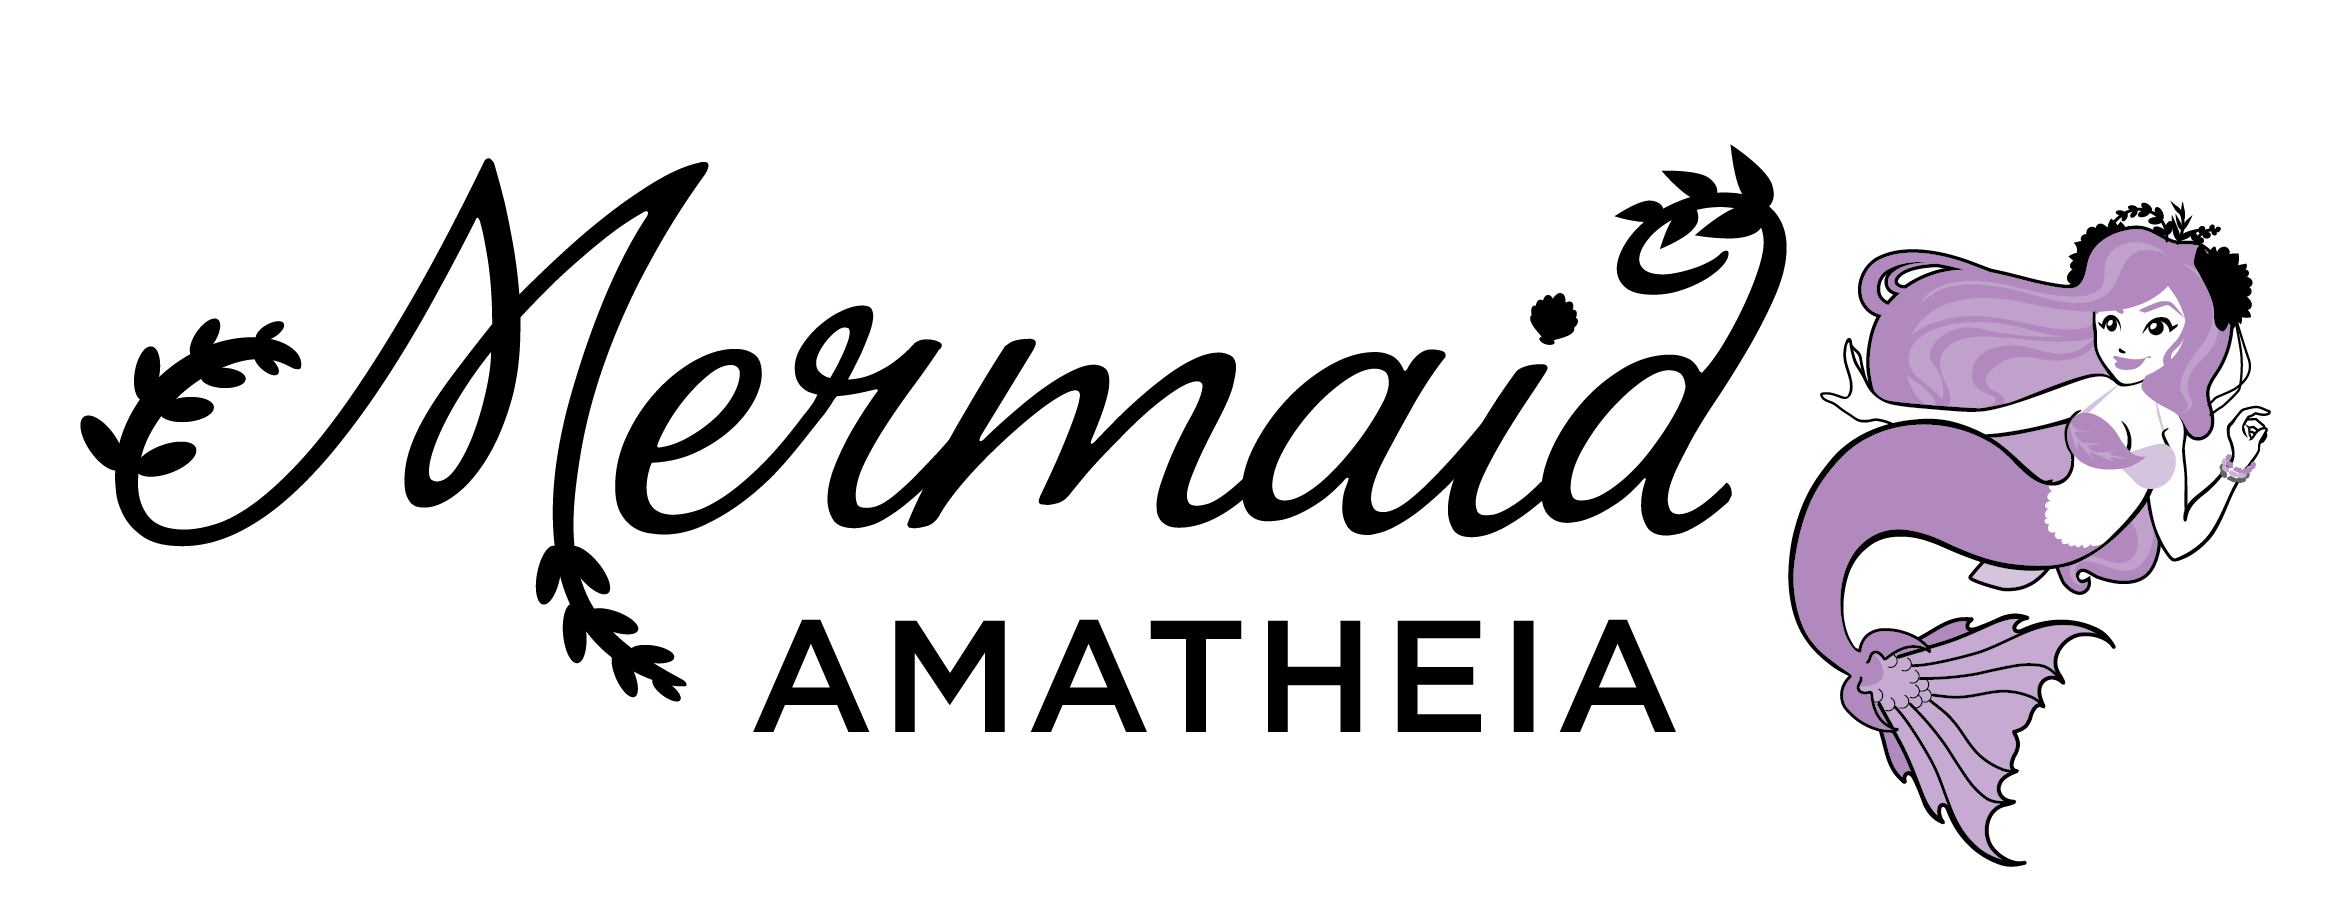 Mermaid Amatheia